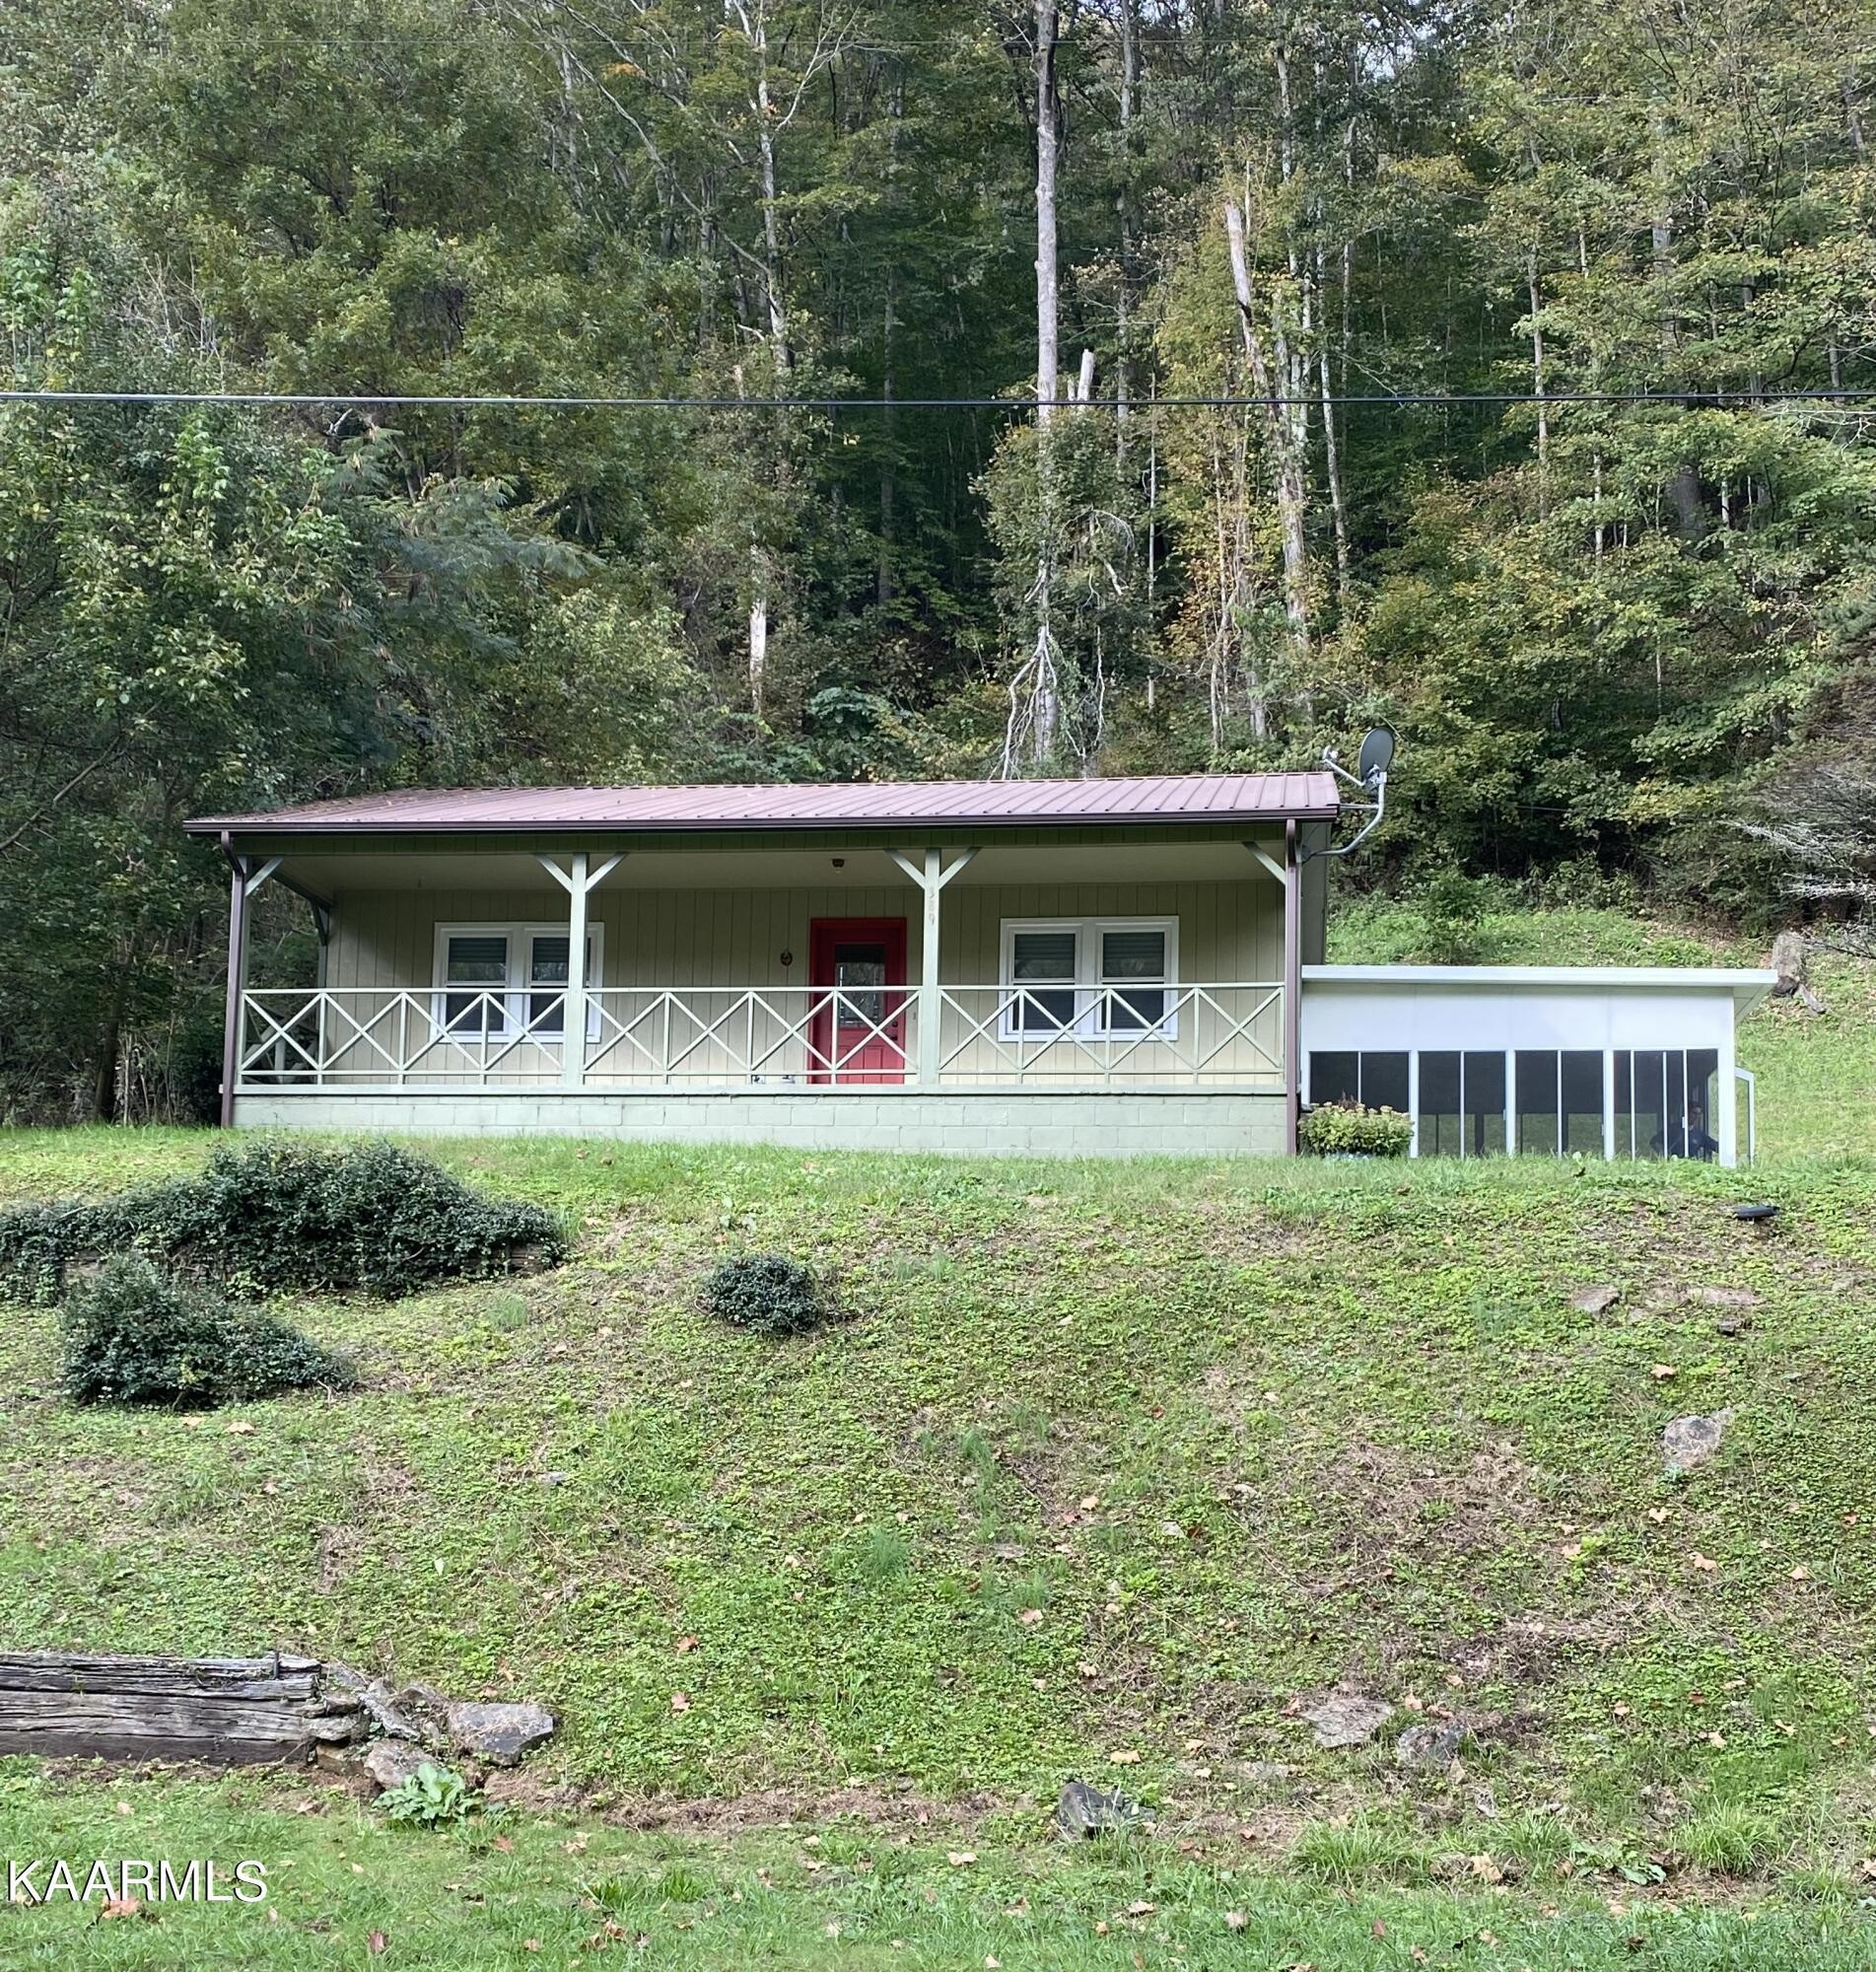 2-Bedroom House In Pineville